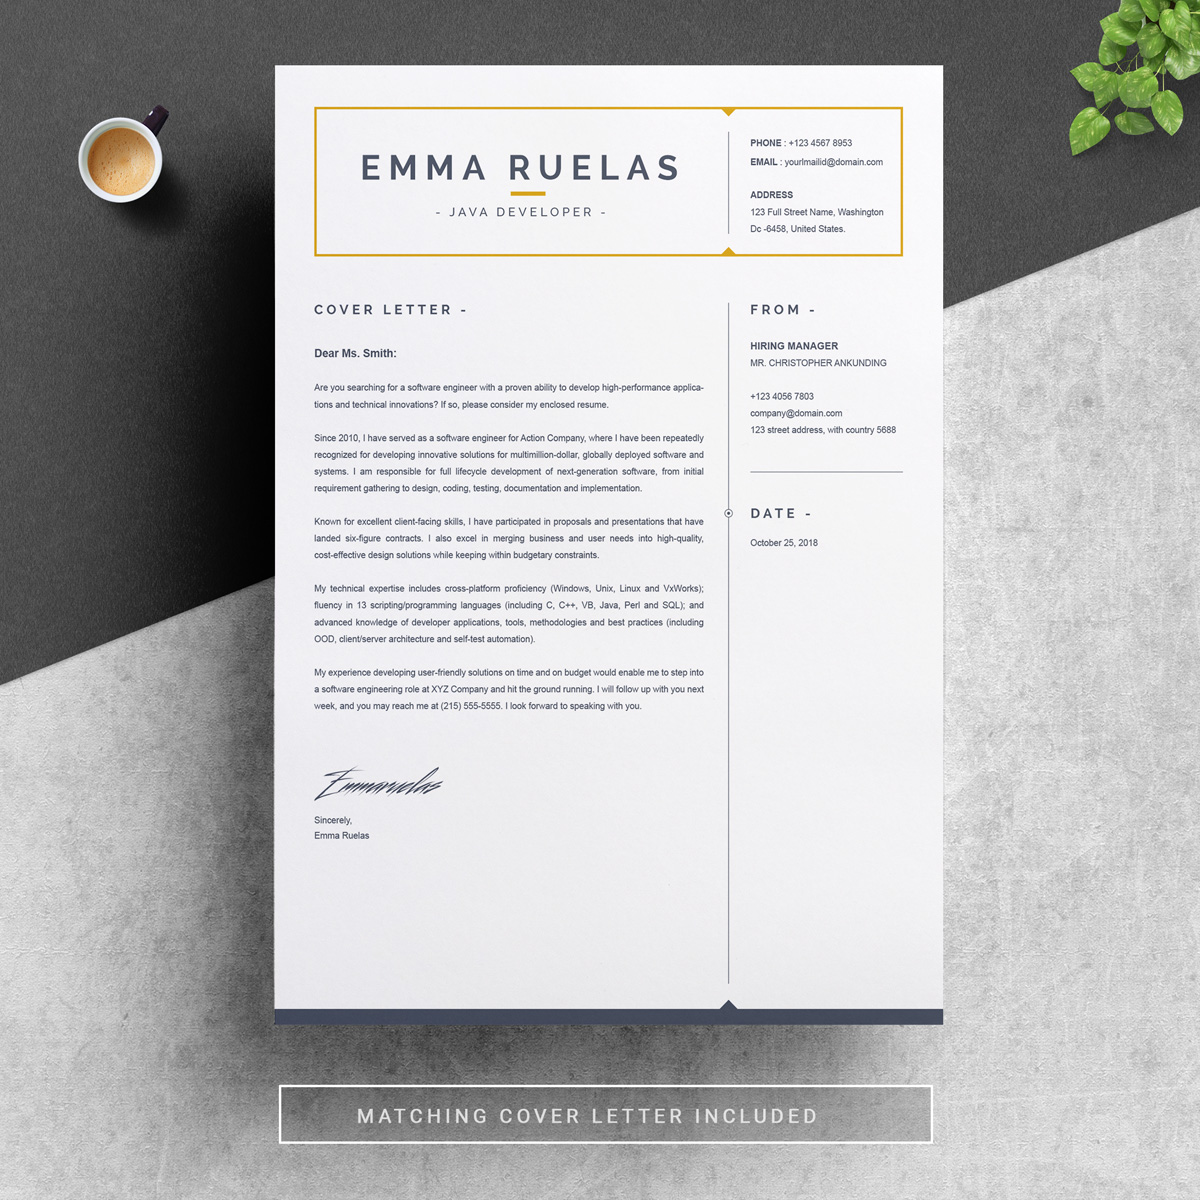 emma resume template  79173